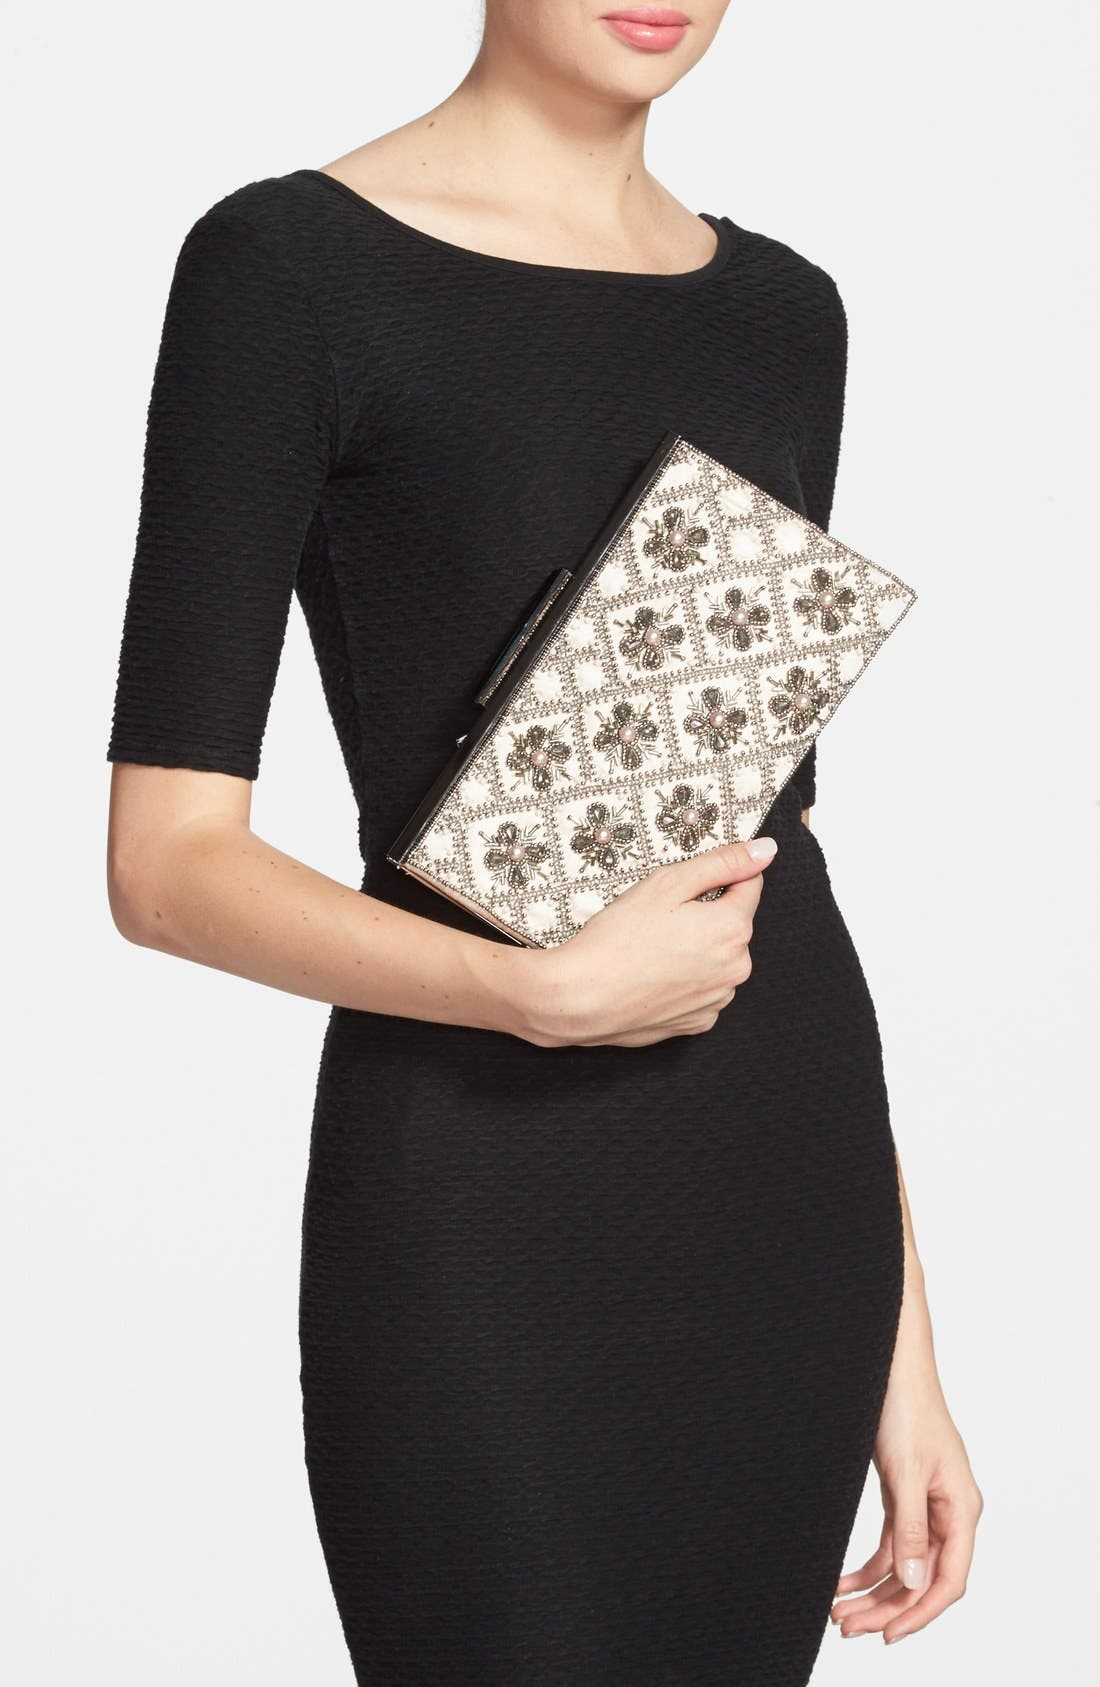 GLINT, 'Topper' Embellished Frame Clutch, Alternate thumbnail 3, color, 950